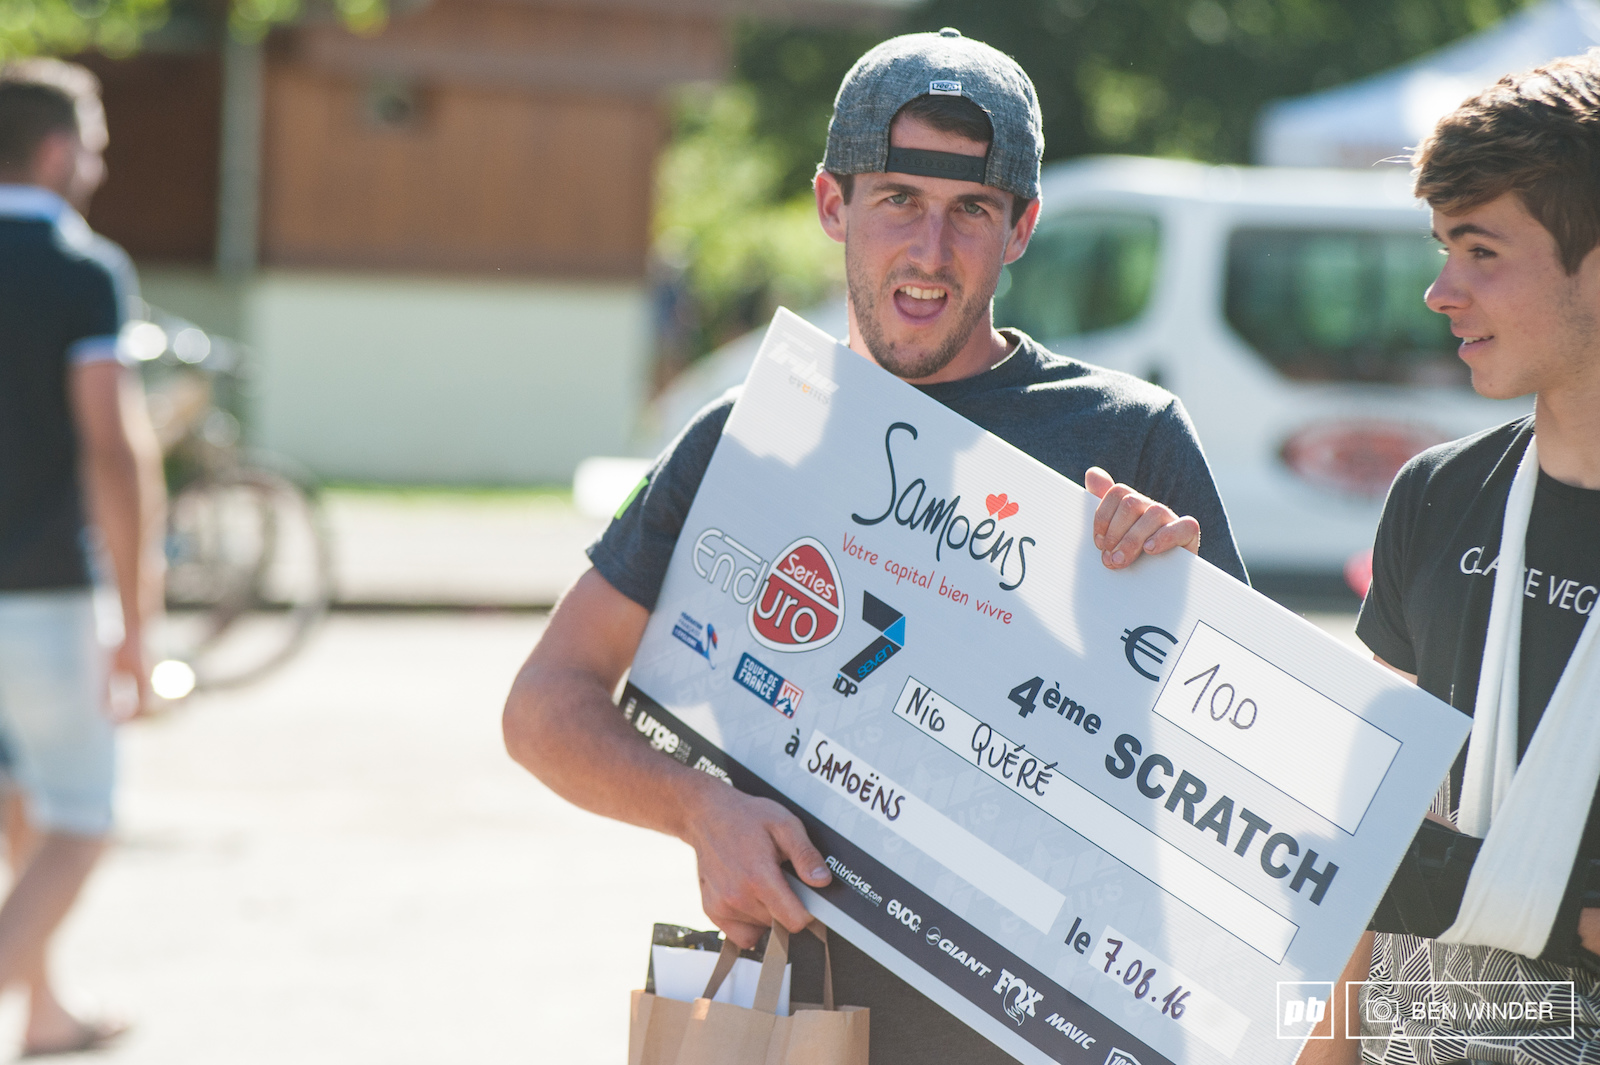 Nico Quere and his winnings. That s all for the French Enduro Series for this year except the Enduro World Series stop. The series here is over now though see you next year